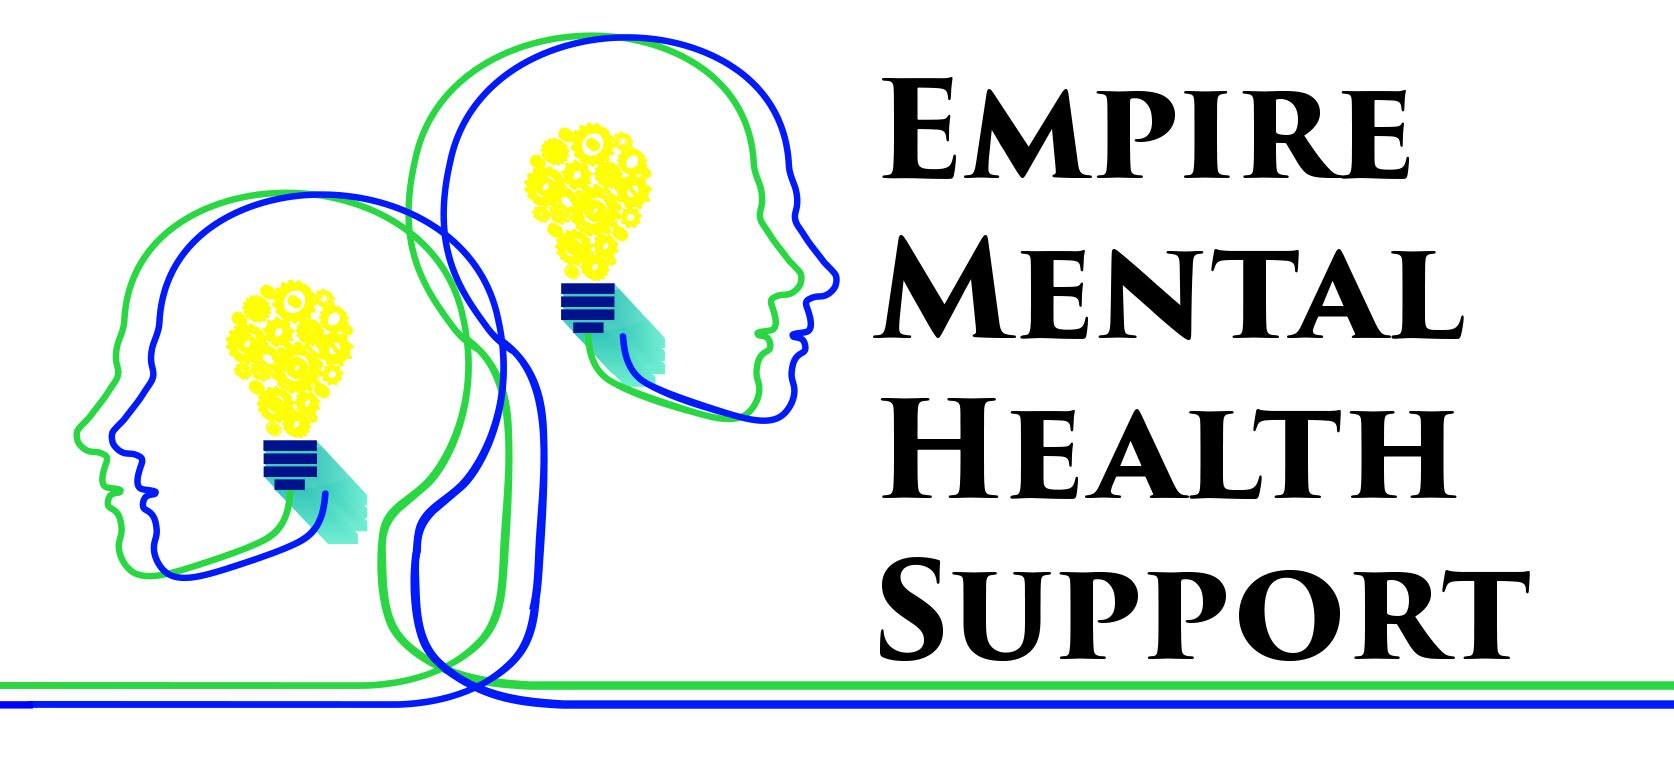 Empire Mental Health Support